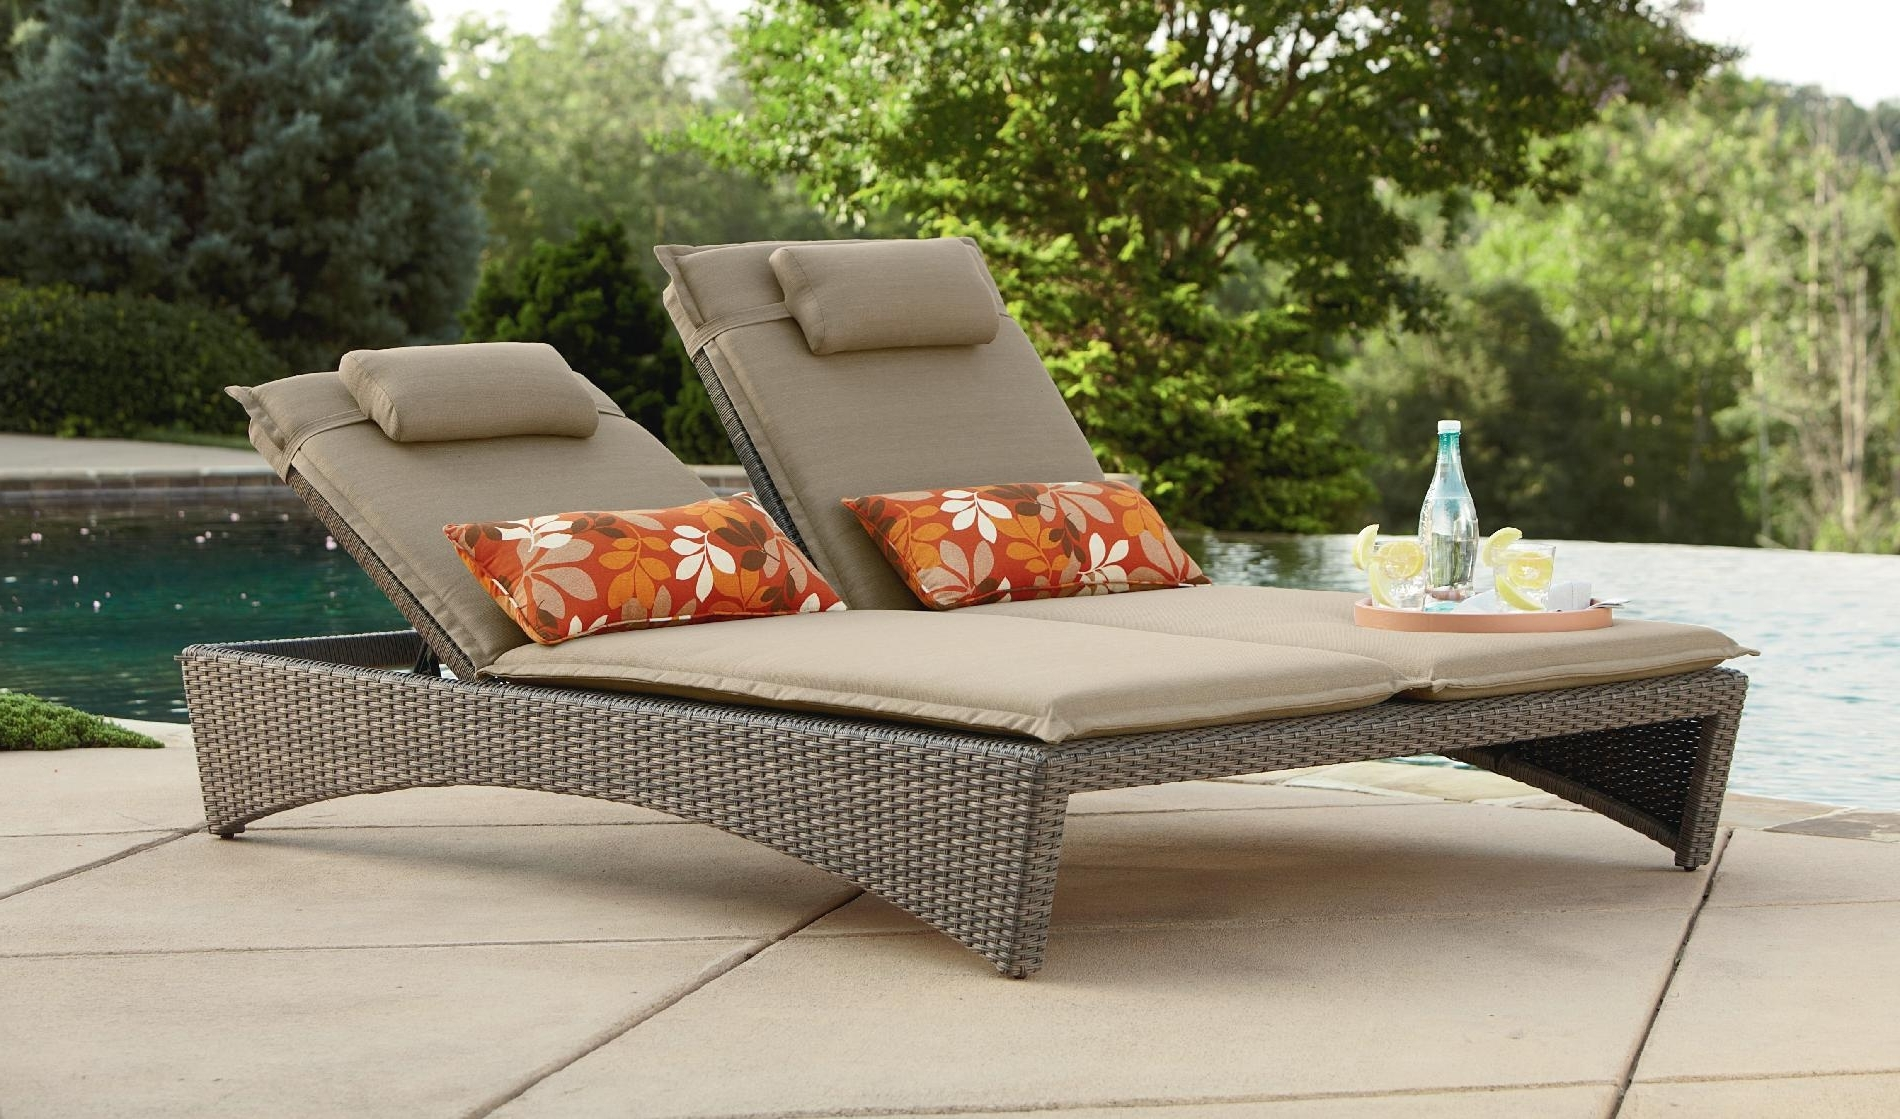 Favorite Picture 3 Of 35 – Walmart Patio Lounge Chairs Luxury Patio Intended For Chaise Lounge Chairs For Backyard (View 8 of 15)